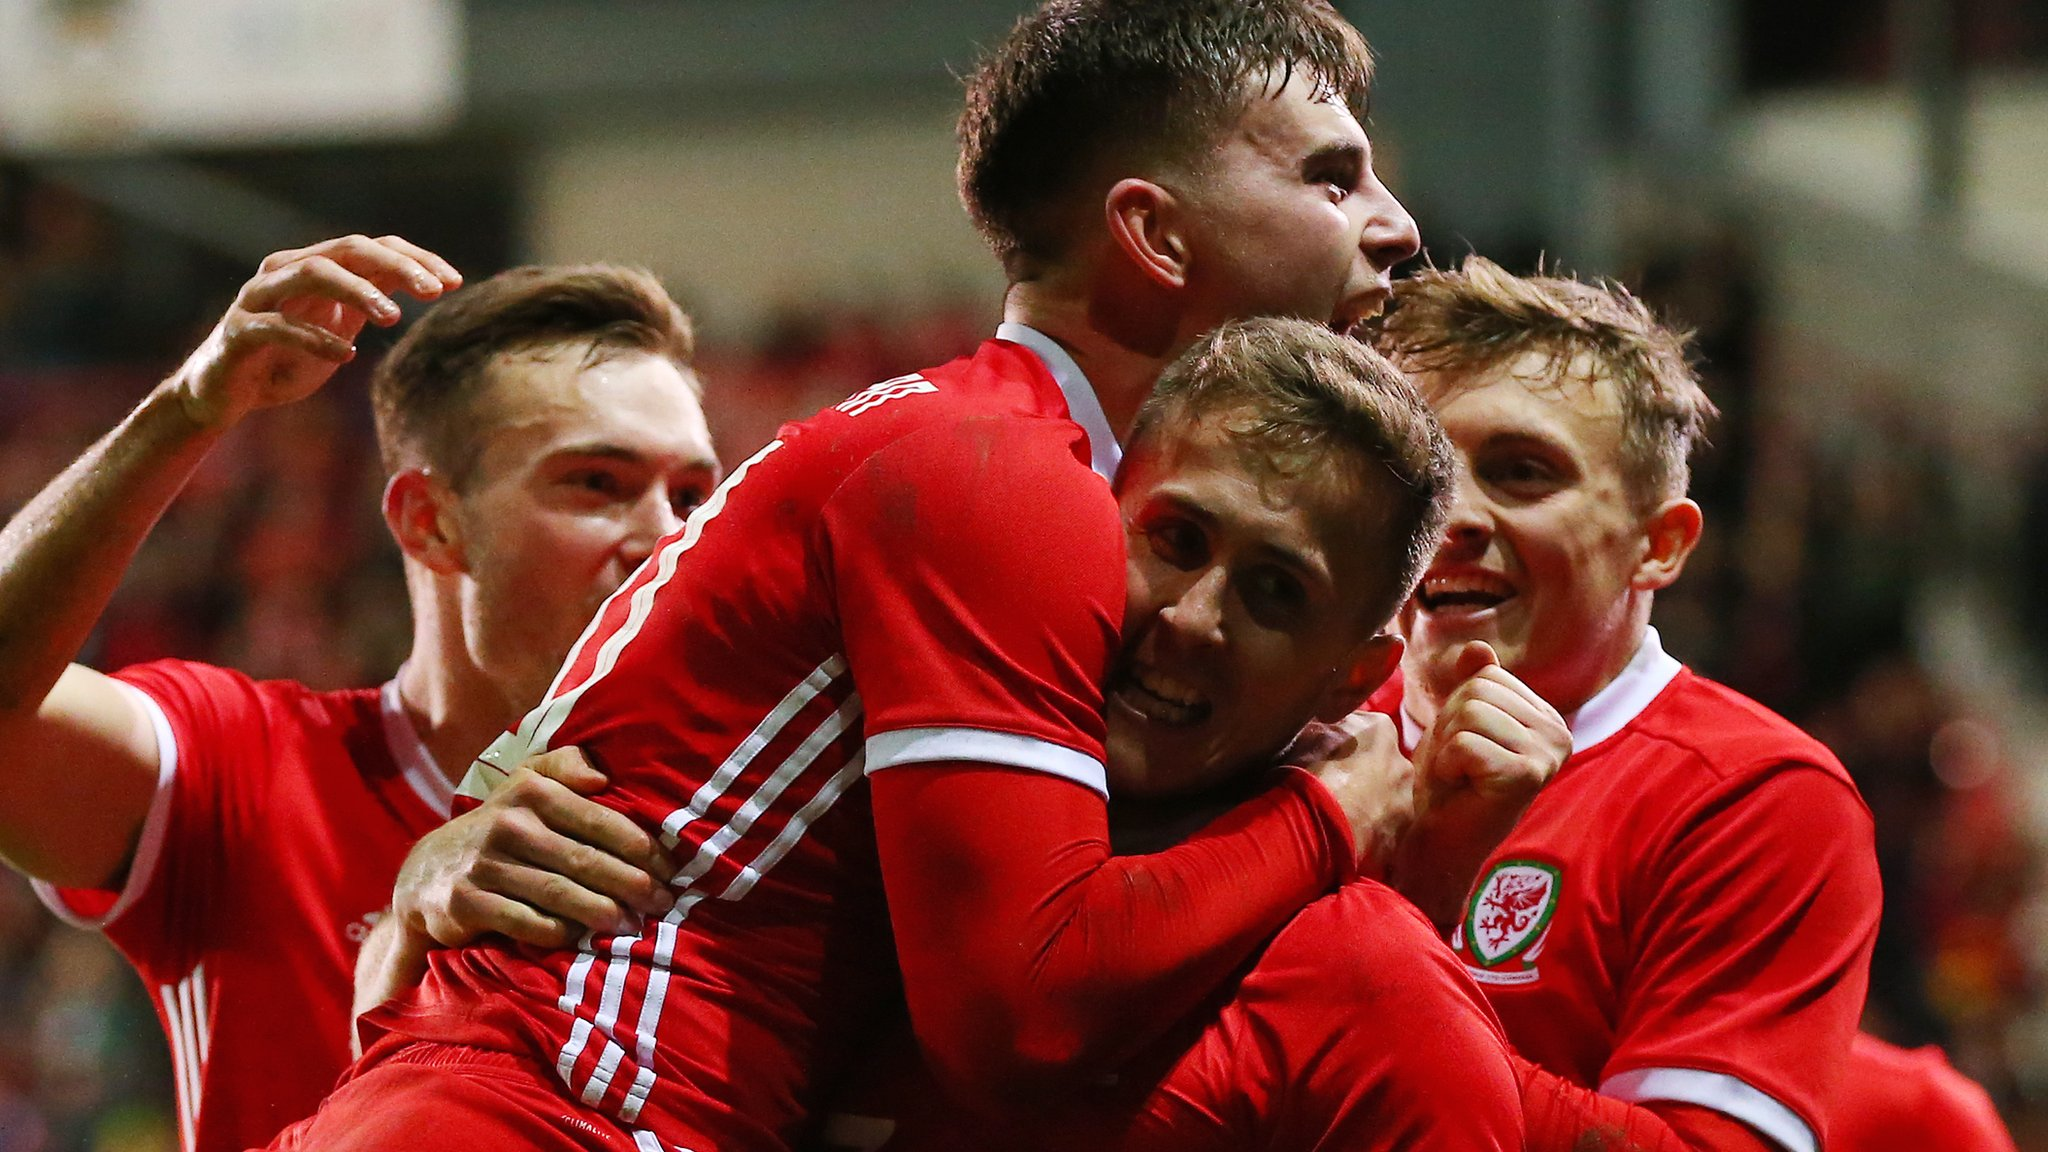 Wales 1-0 Trinidad and Tobago: Ben Woodburn scores injury-time winner